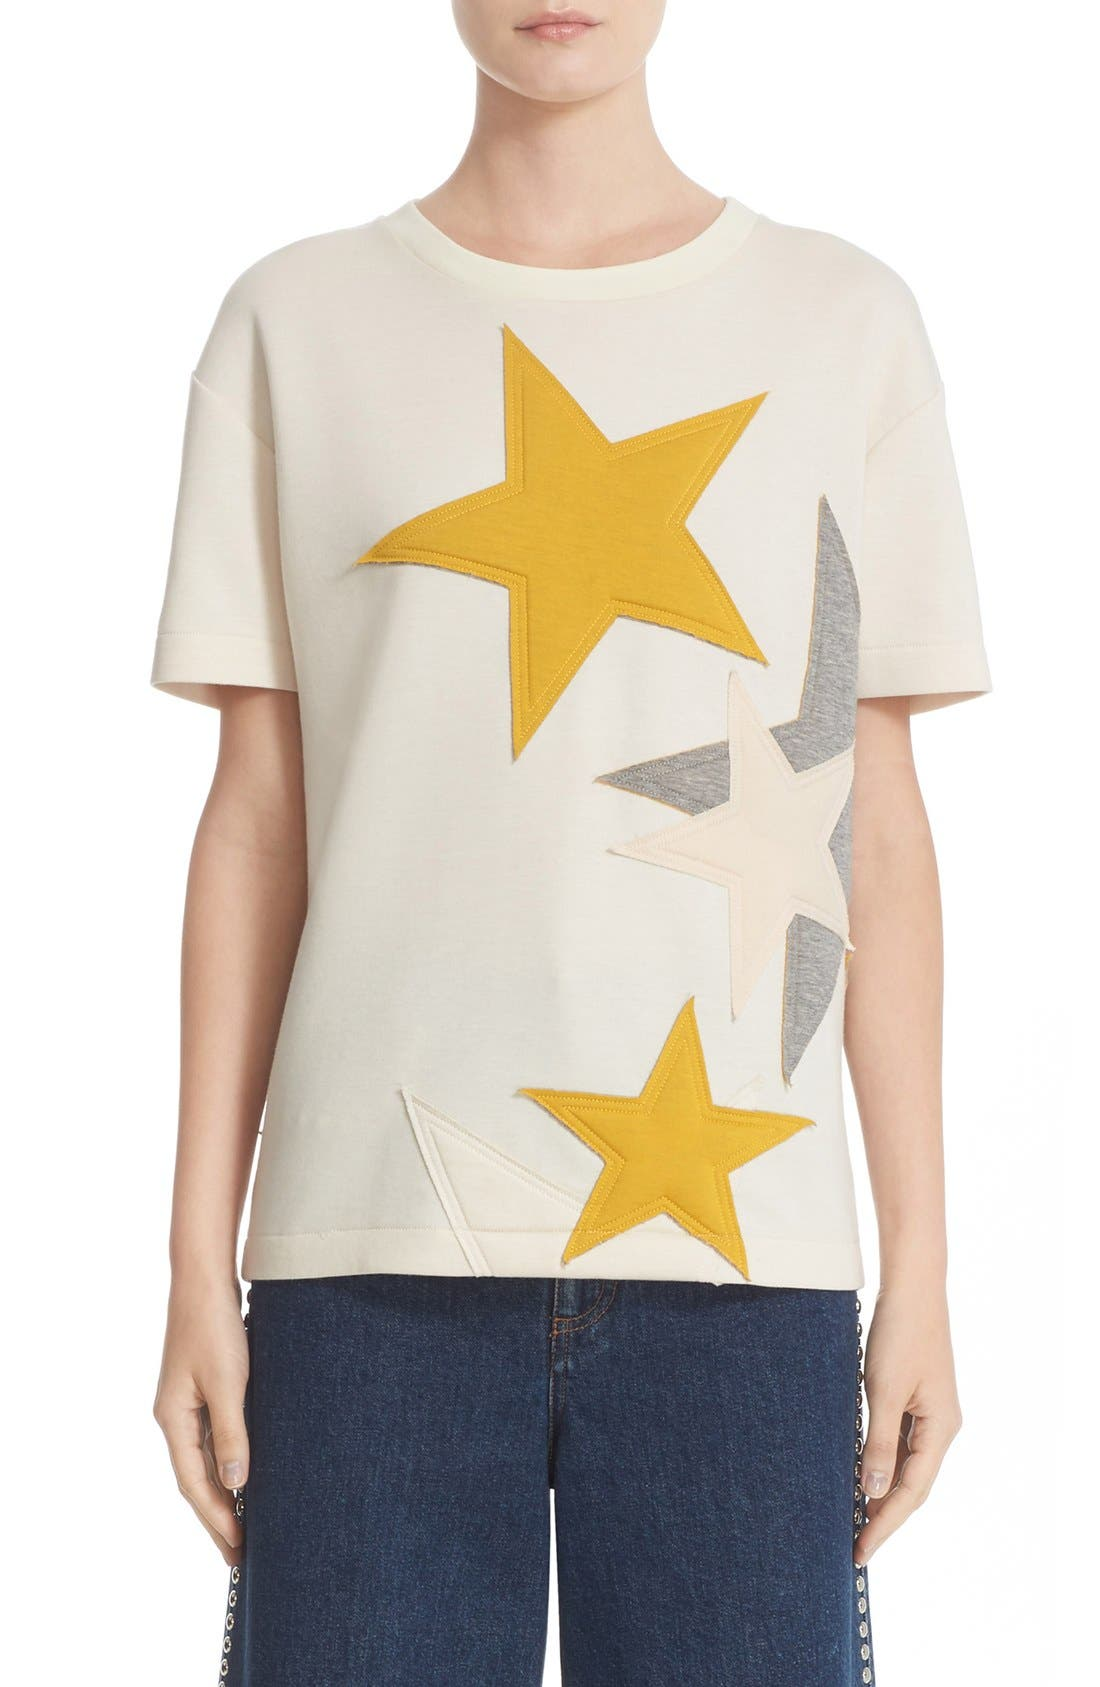 Main Image - Stella McCartney Star Appliqué Jersey Tee